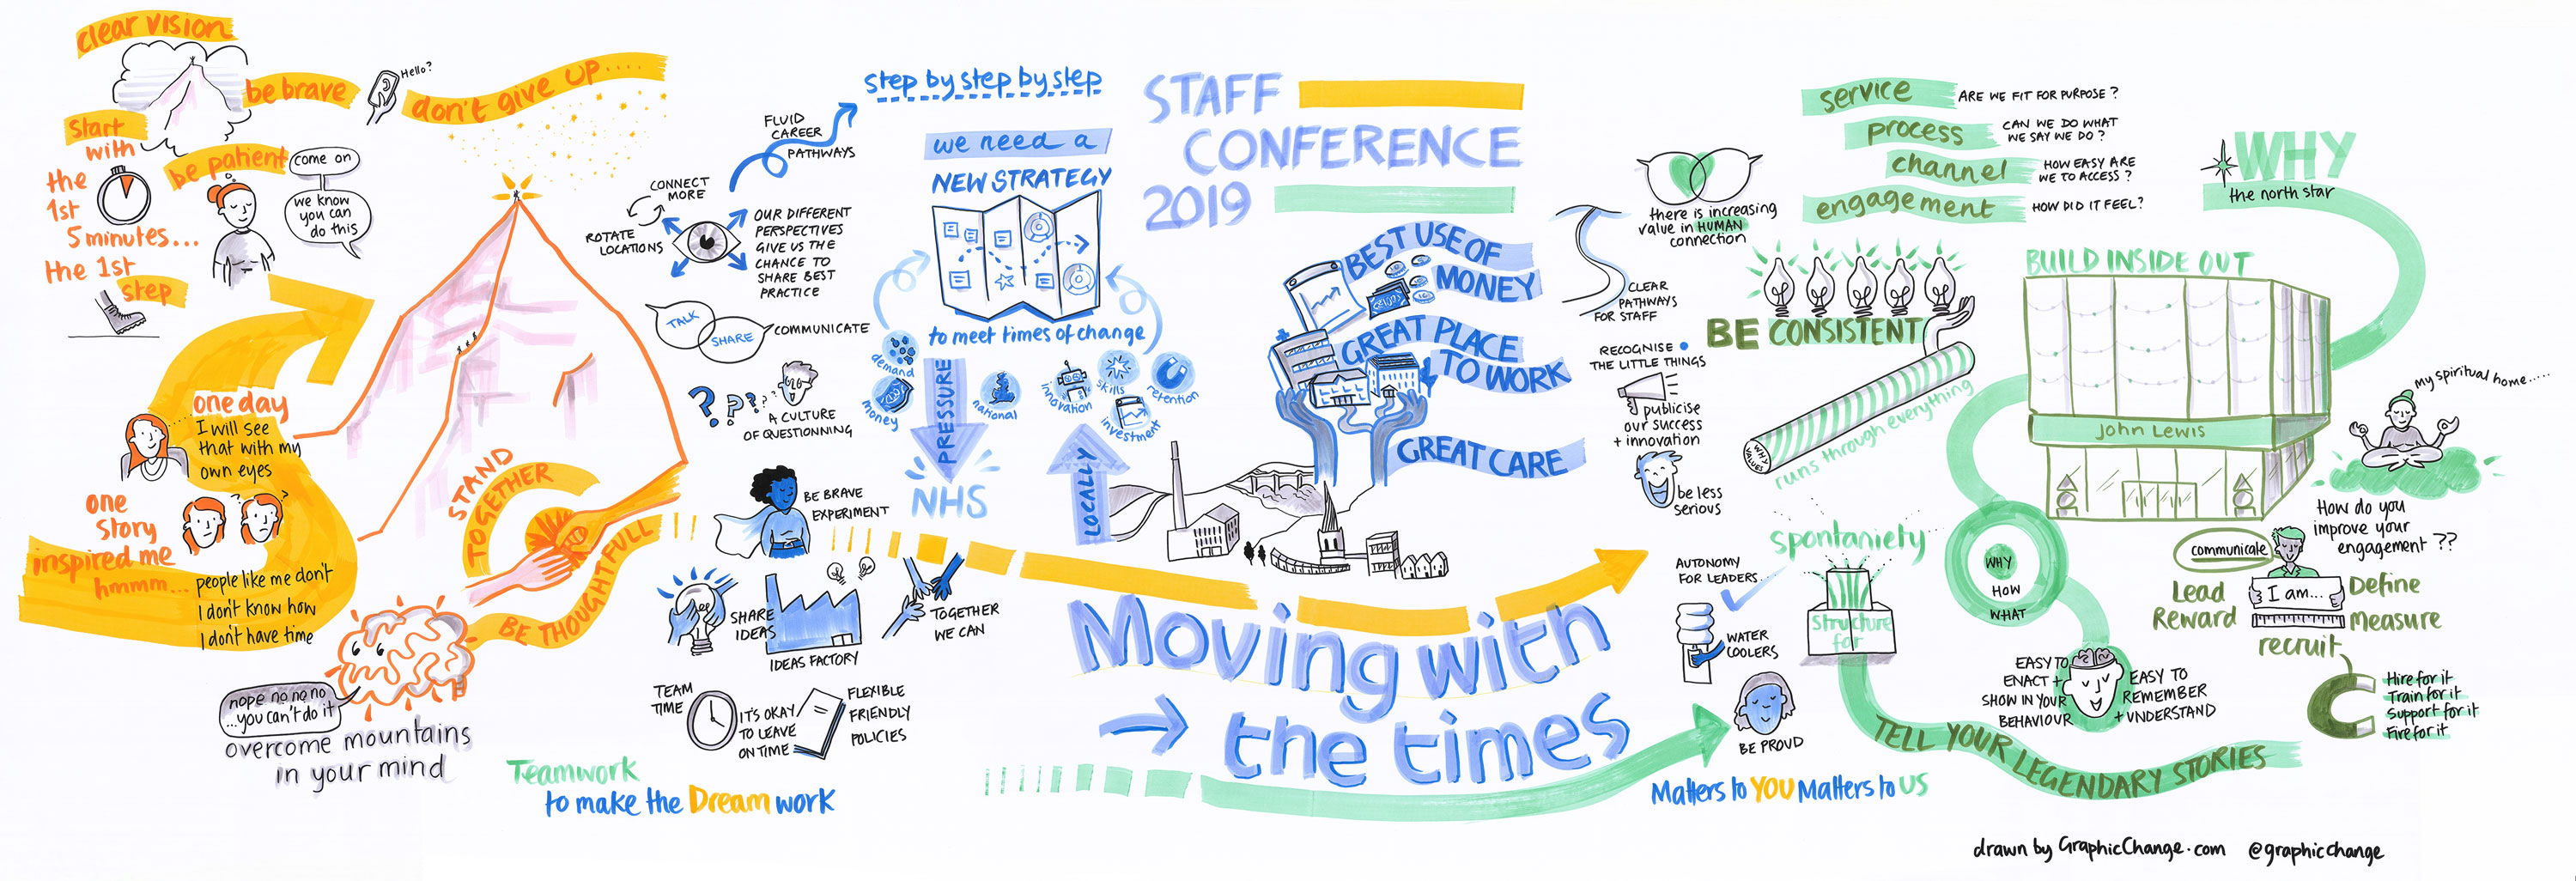 Live graphic recording of 1 day staff conference